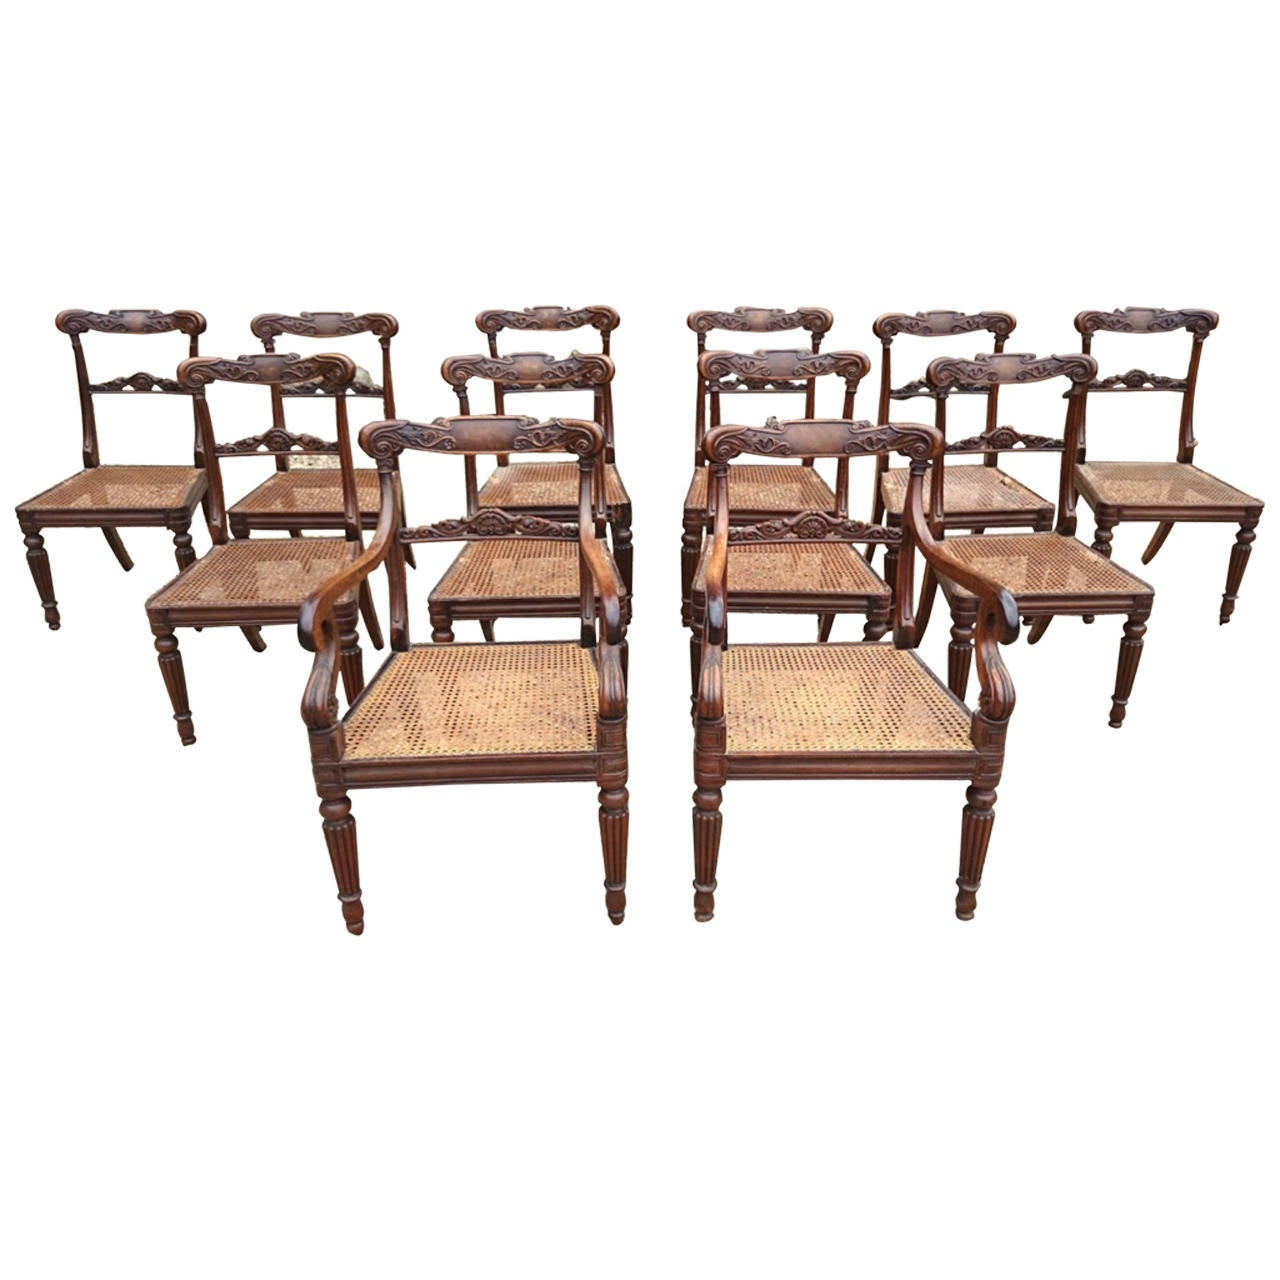 Superb Set Of 12 Regency Period Dining Chairs Attributable To Gillows For Sale At 1stdibs